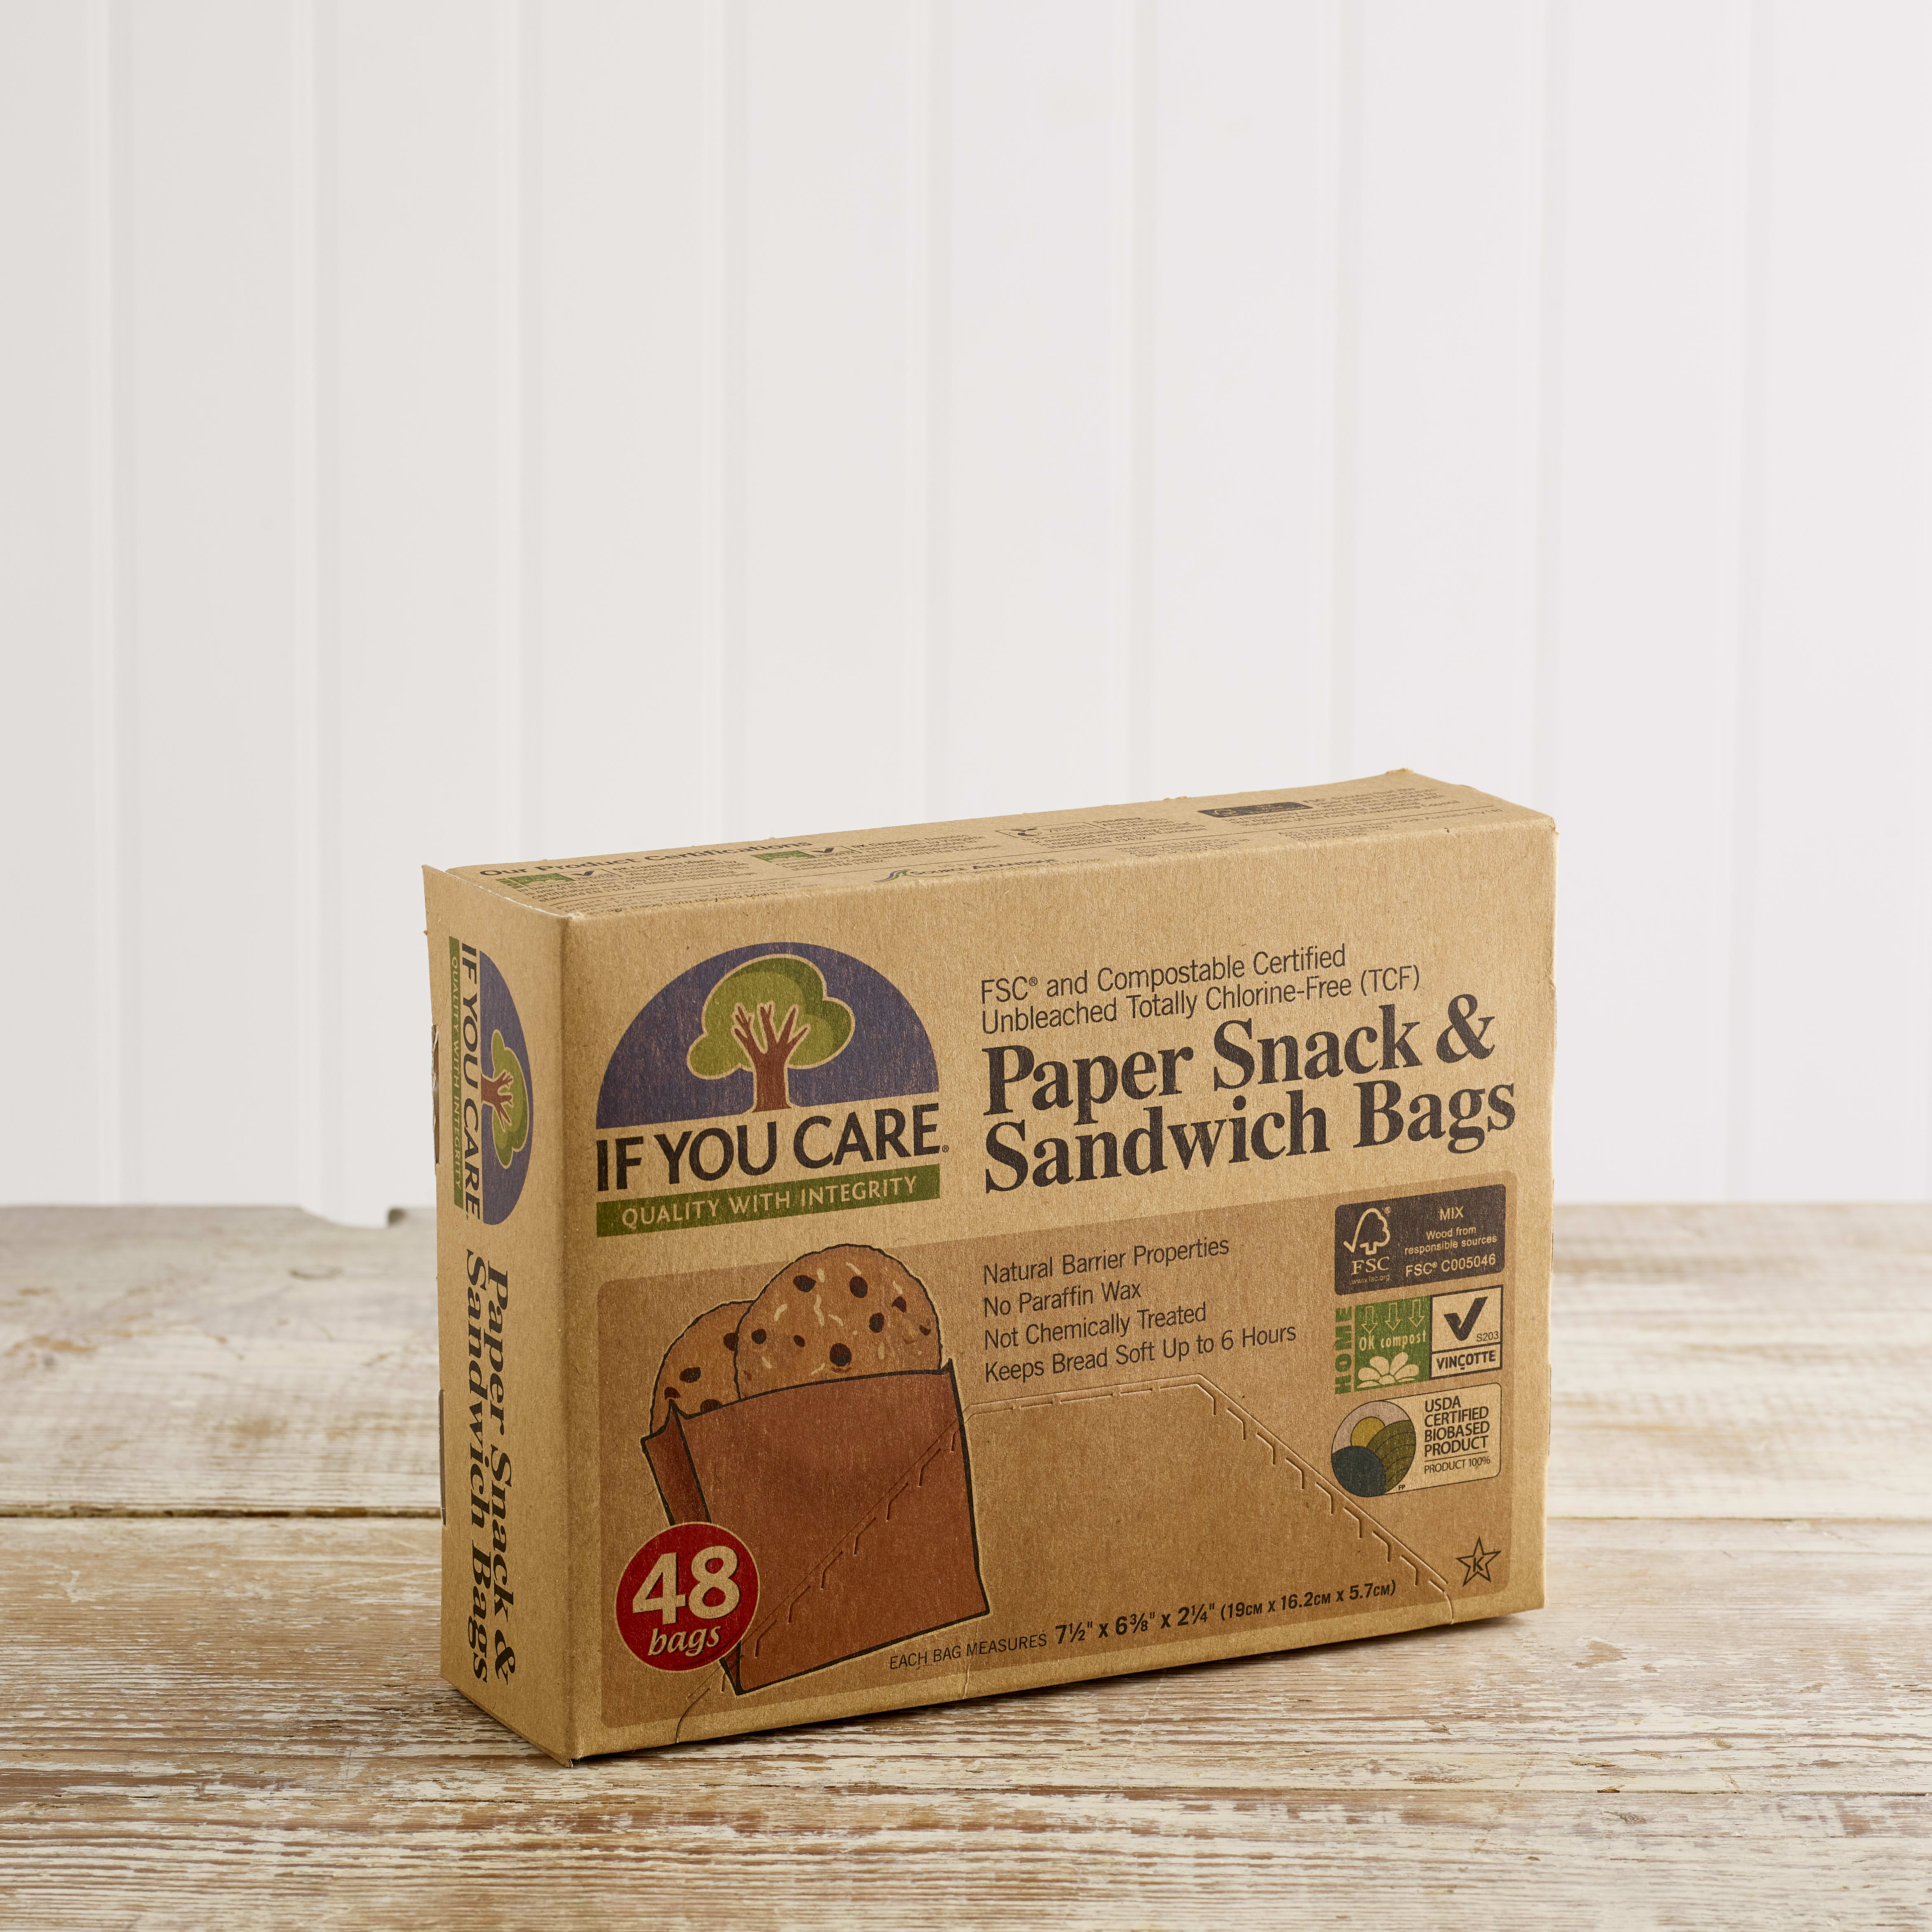 If You Care Sandwich and Snack Bags, 48 pack